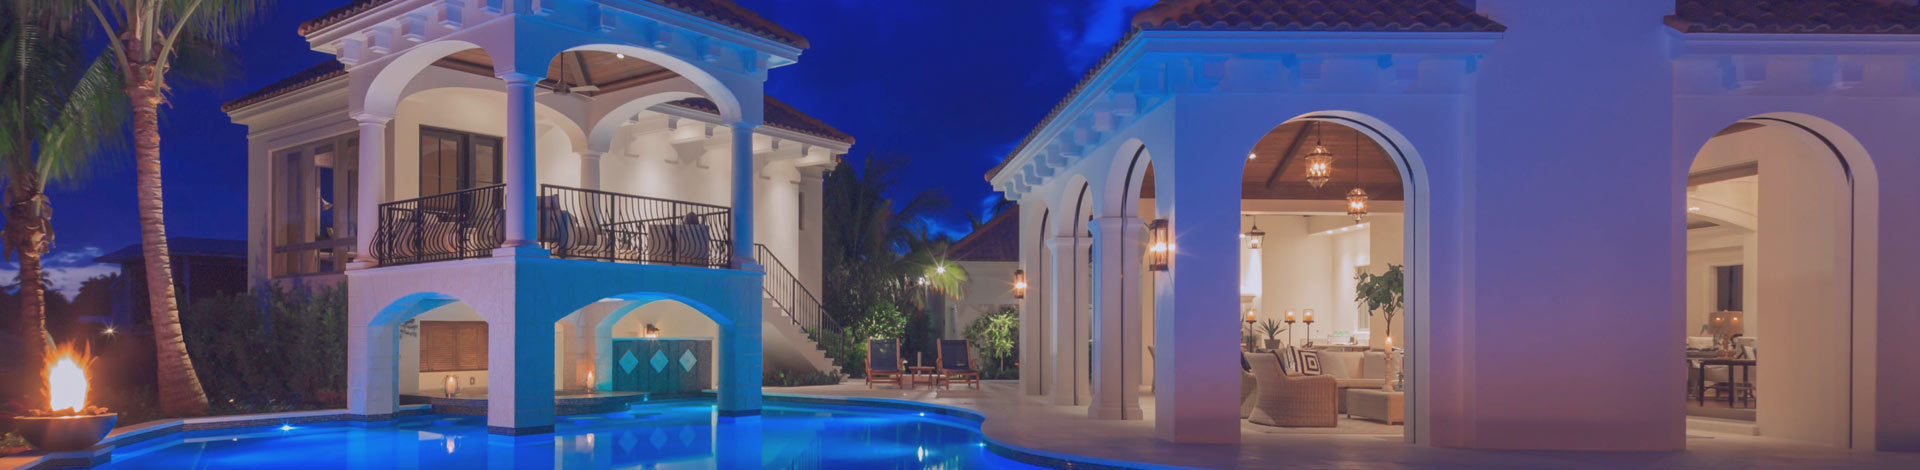 Pool with Lights | Outside Productions International